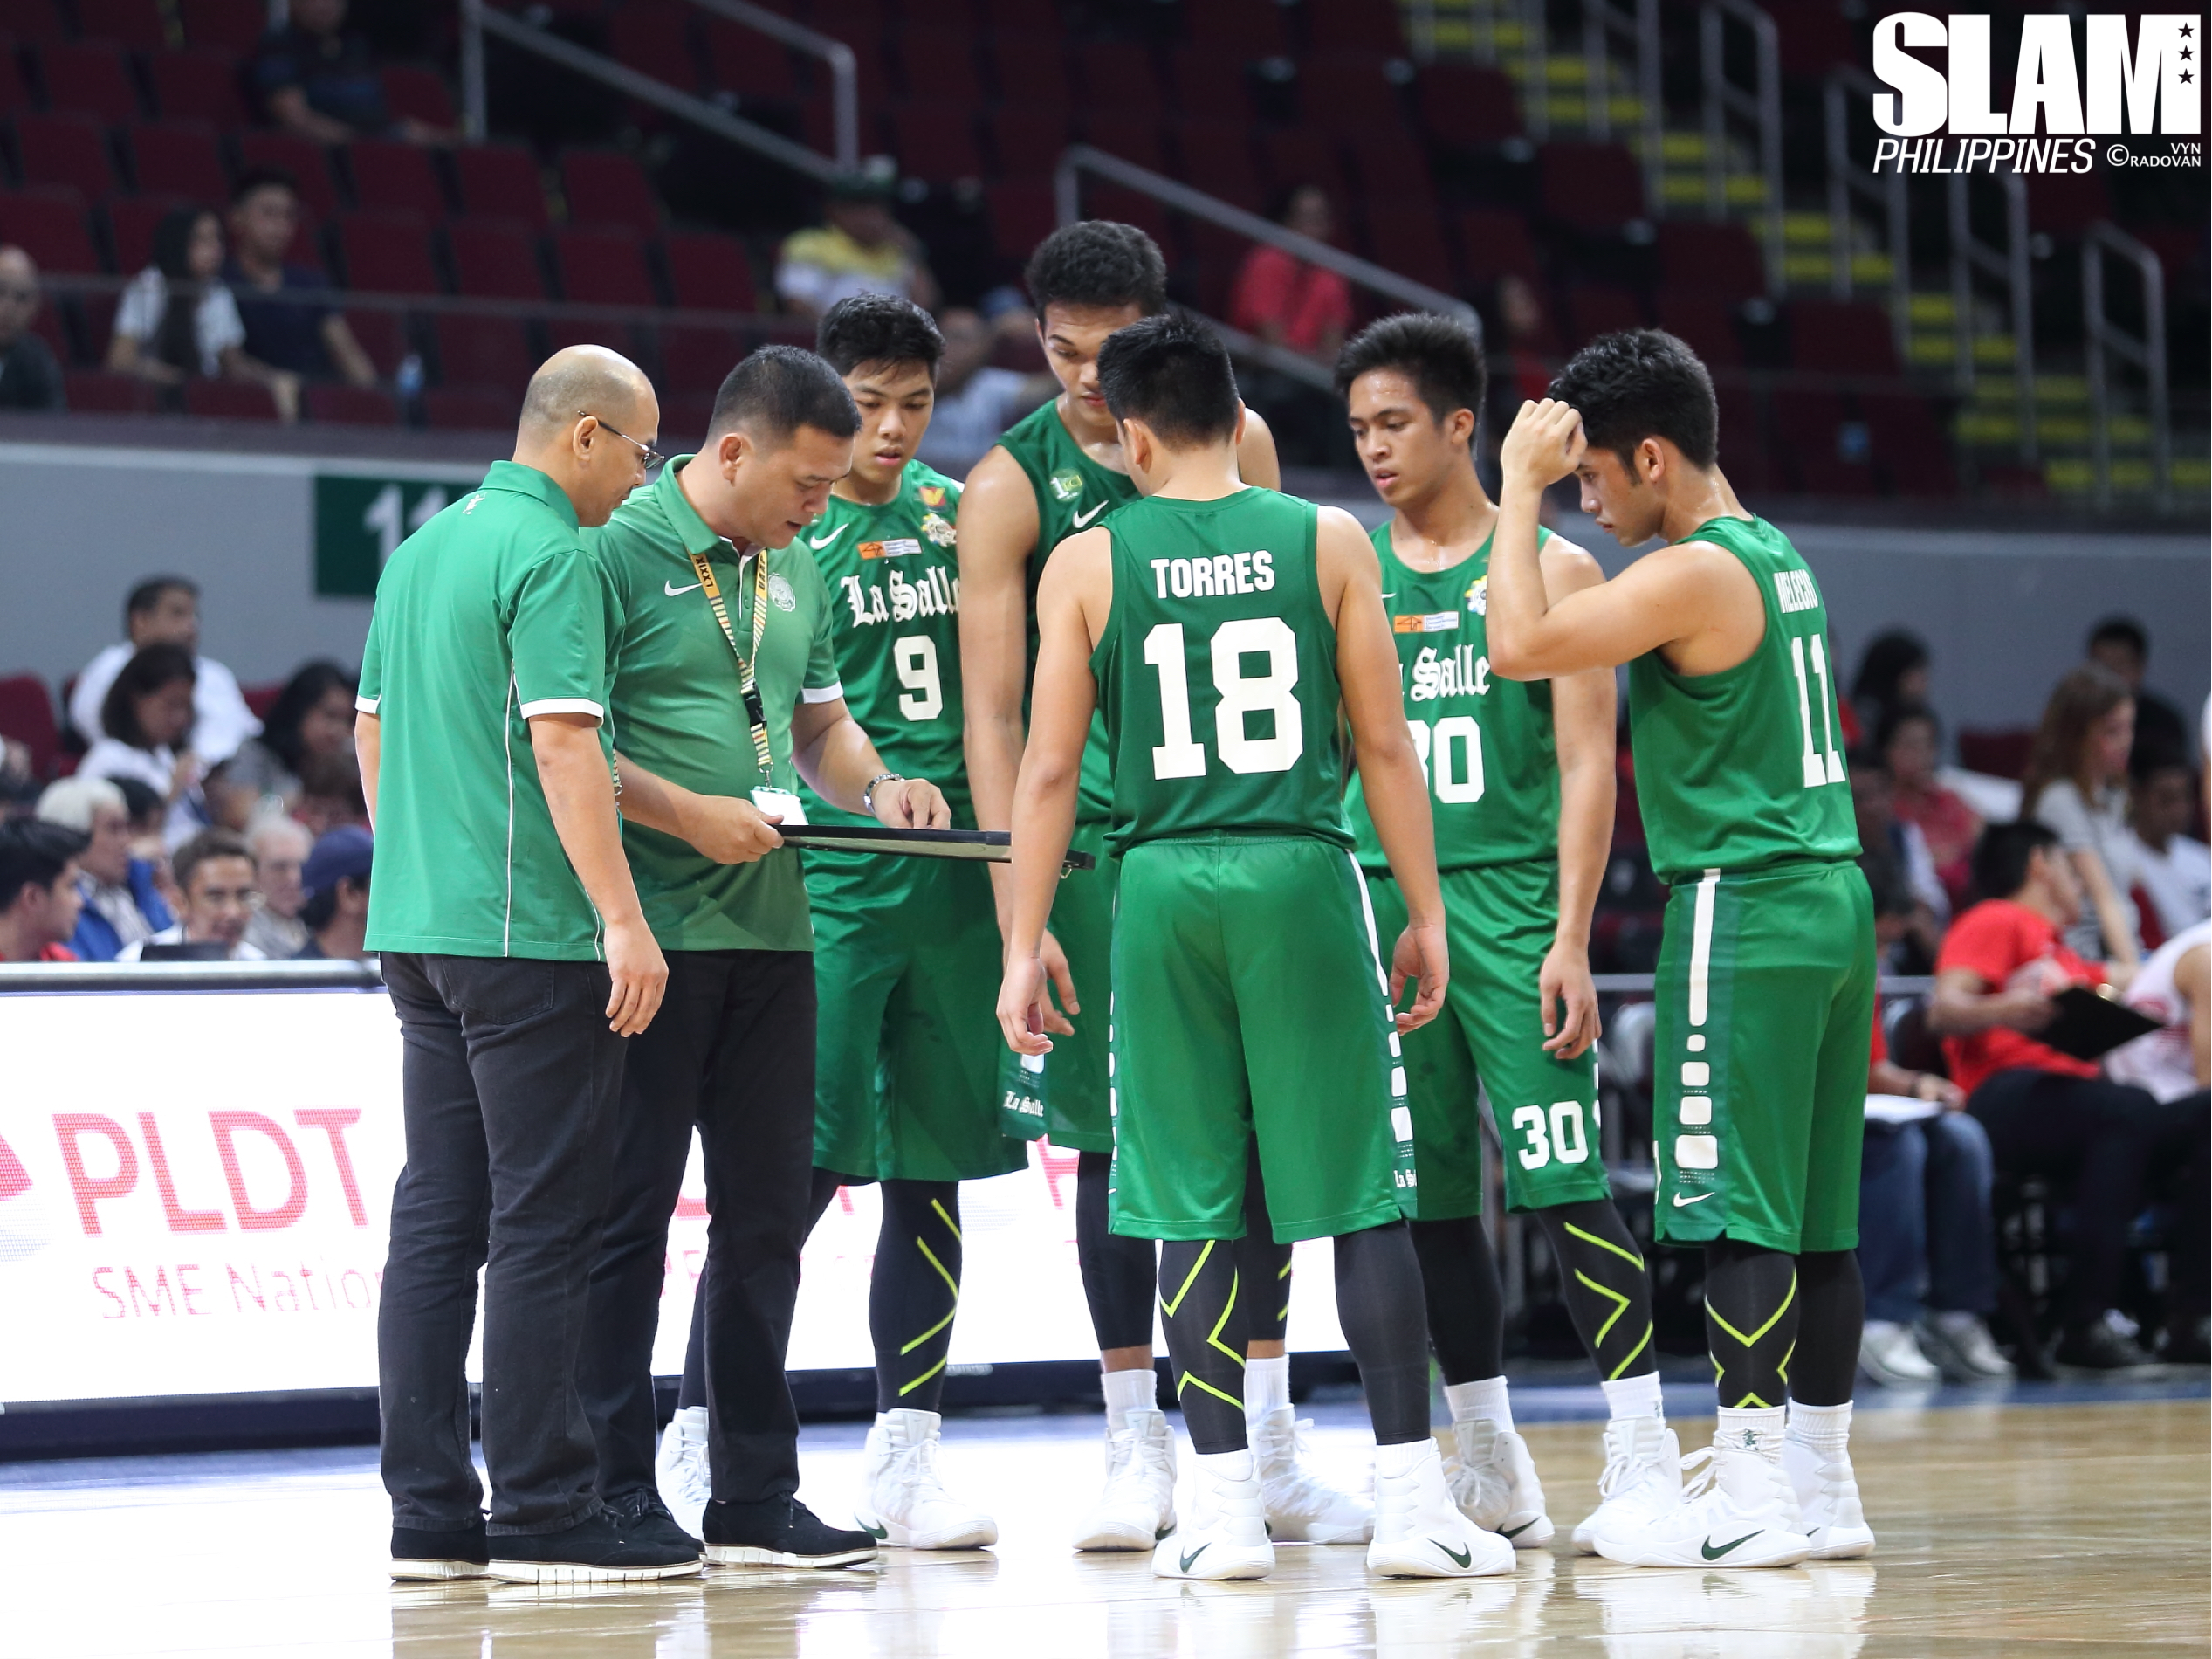 UAAP-DLSU-vs-UE-September-28-2016-VR-5.jpeg